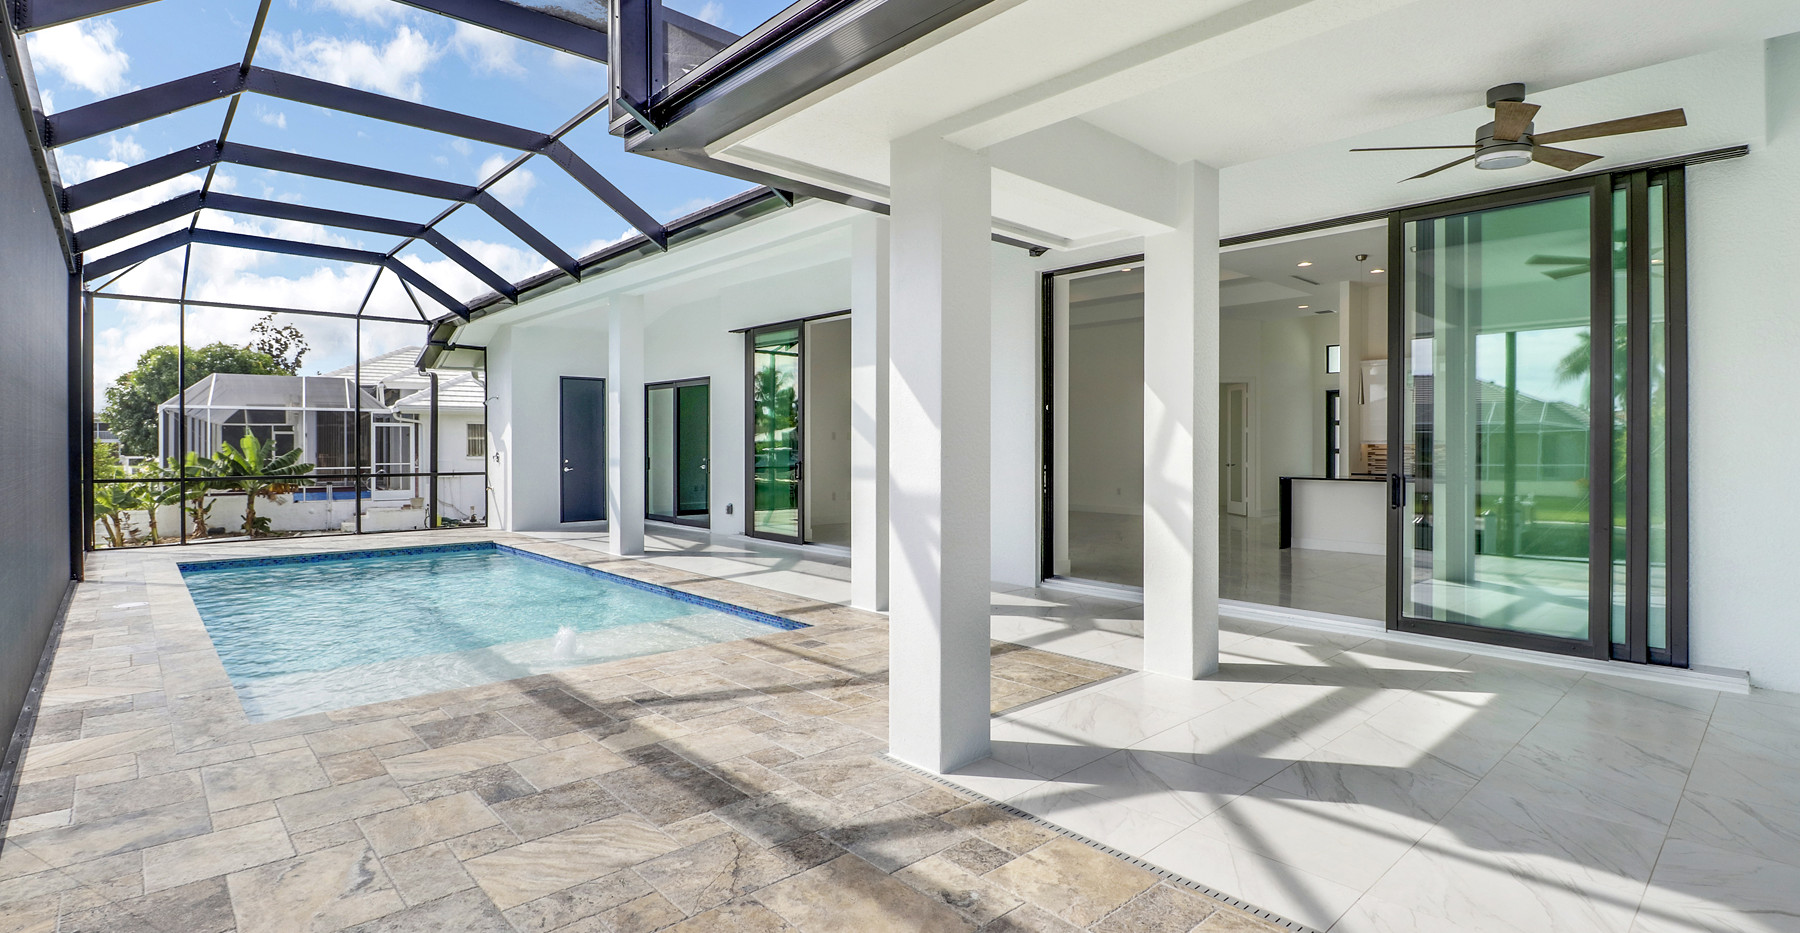 Jamaica Court home in Marco island Exterior covered pool deck